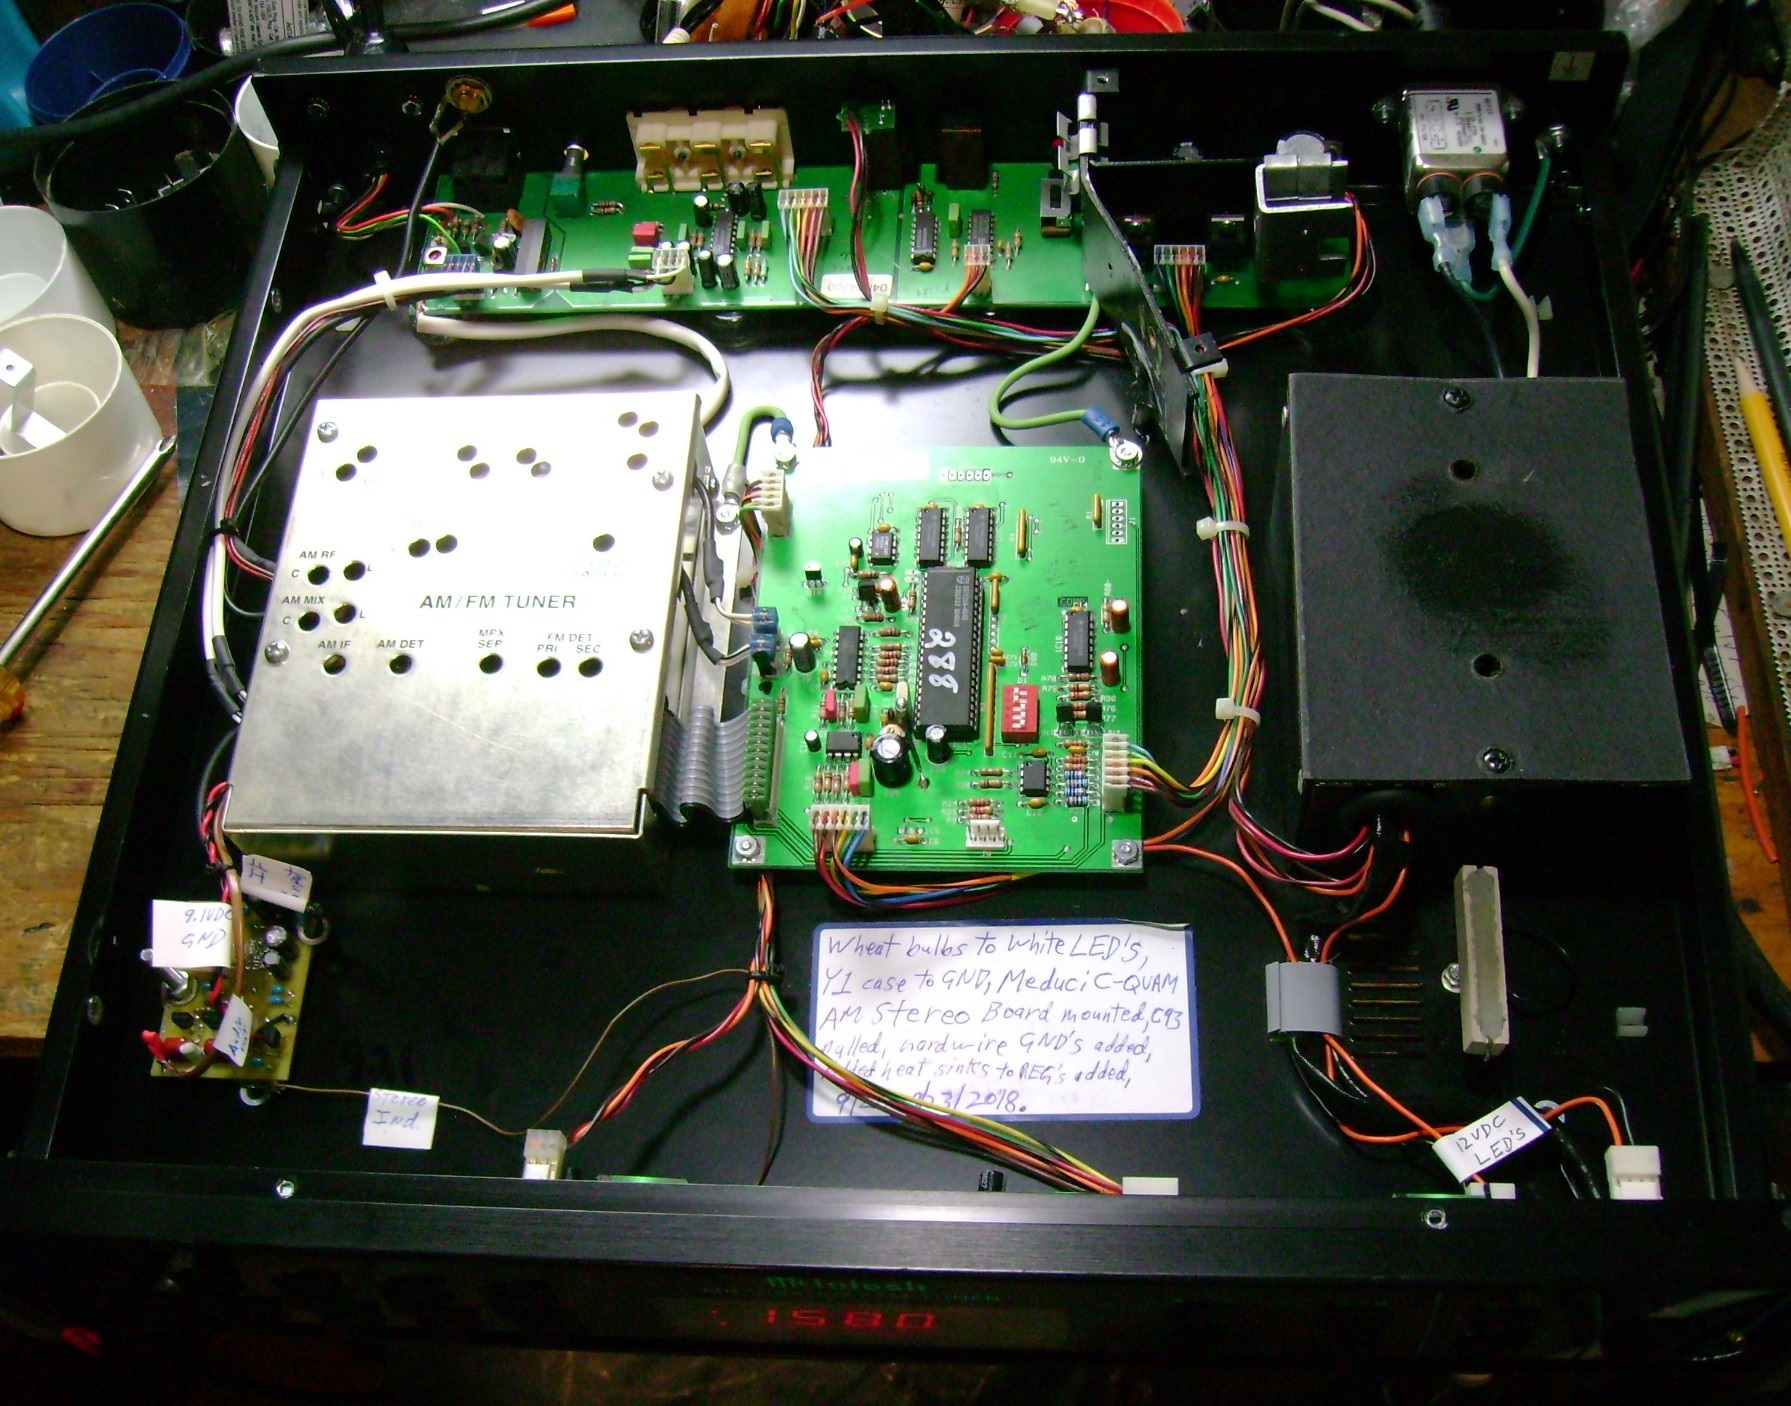 Am Stereo Renaissance Voice Transmitter Via Medium Wave Band Mcintosh Interior View